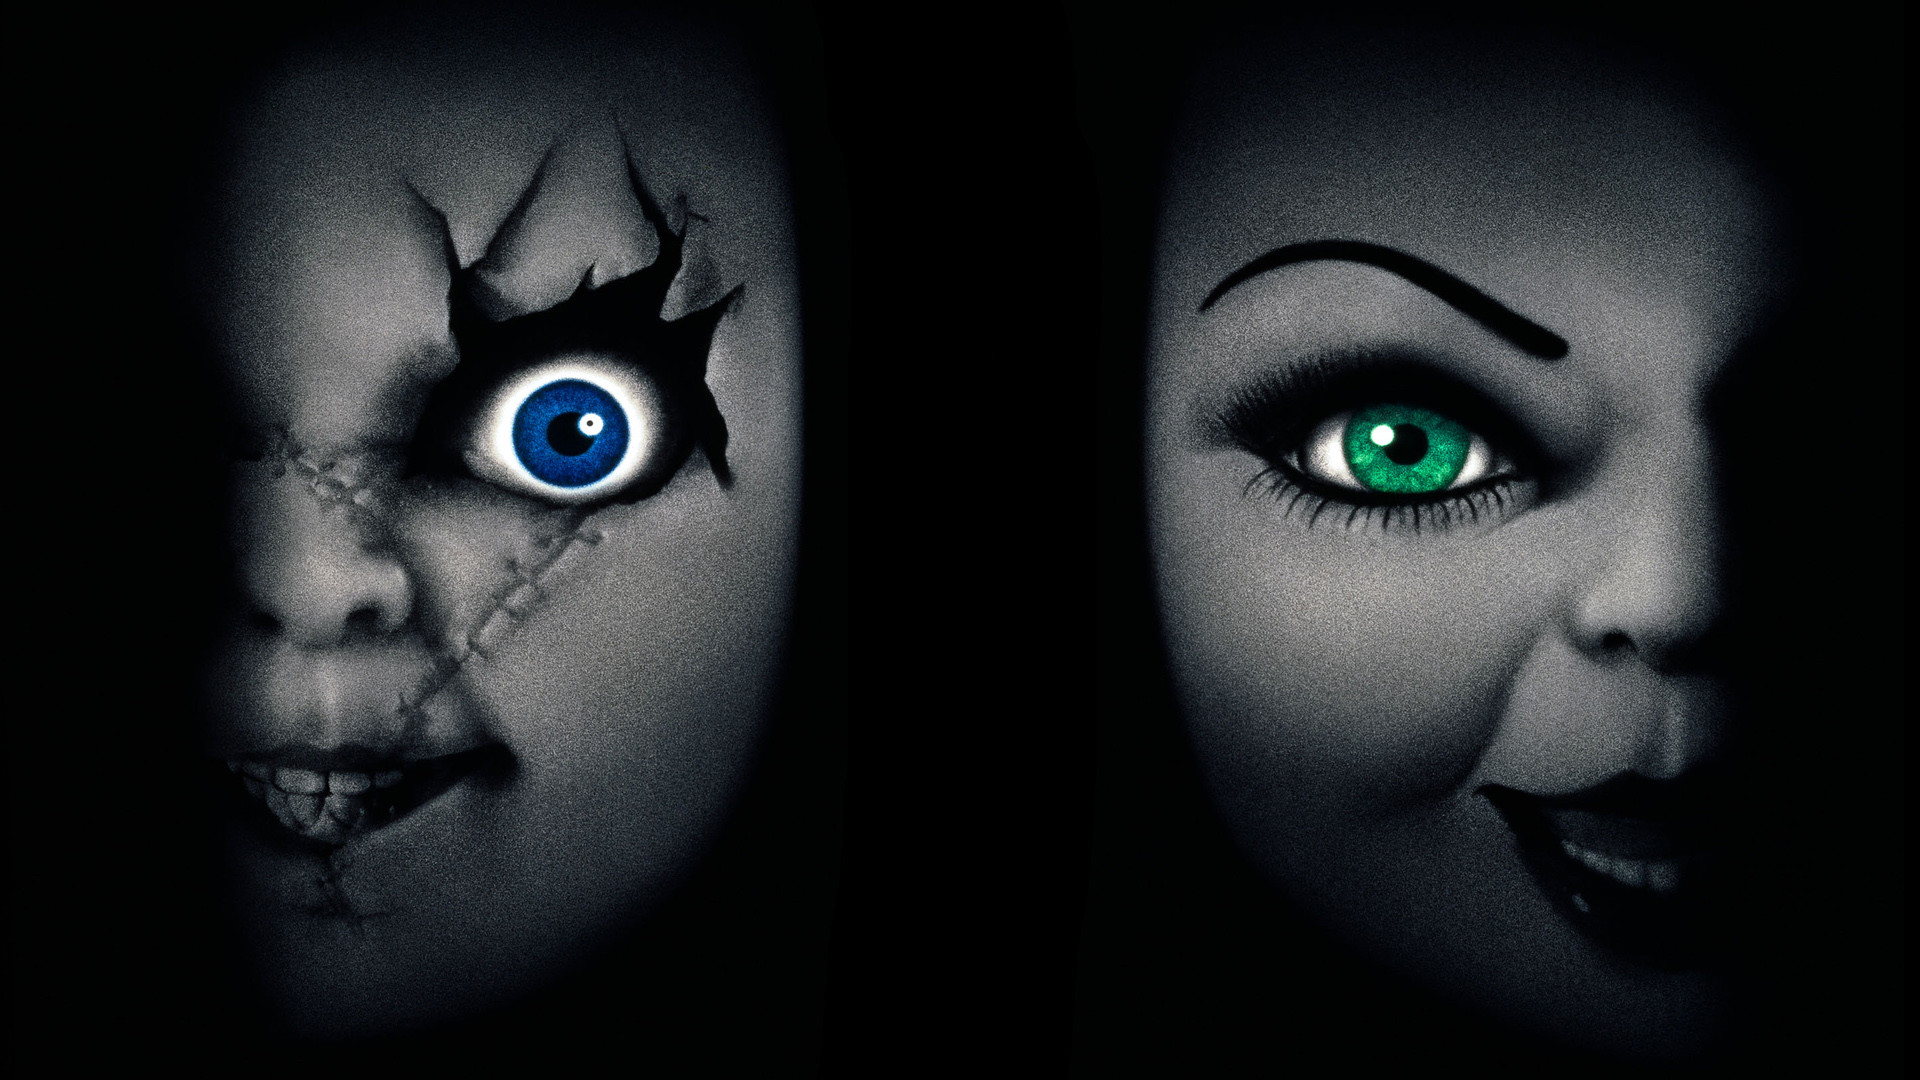 Seed of chucky wallpaper 83 images 1920x1080 hd wallpapers chucky chucky jpg 800 x 600 633 kb jpeg hd wallpapers voltagebd Choice Image